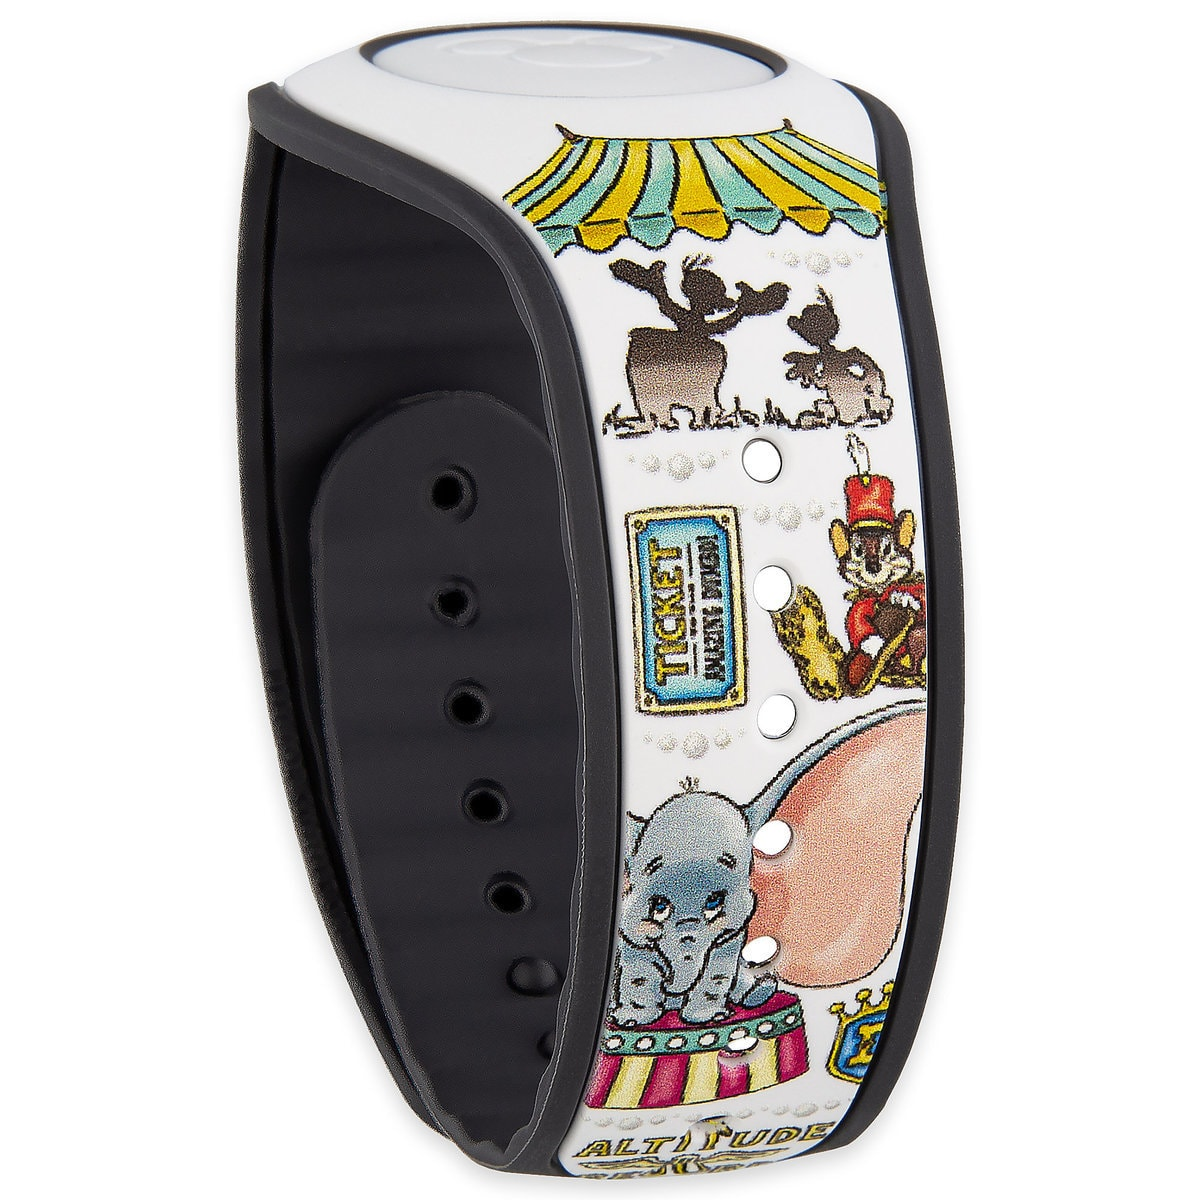 May The 4th Be With You Disney 2019: Limited Edition Dumbo Dooney & Bourke MagicBand Out Now